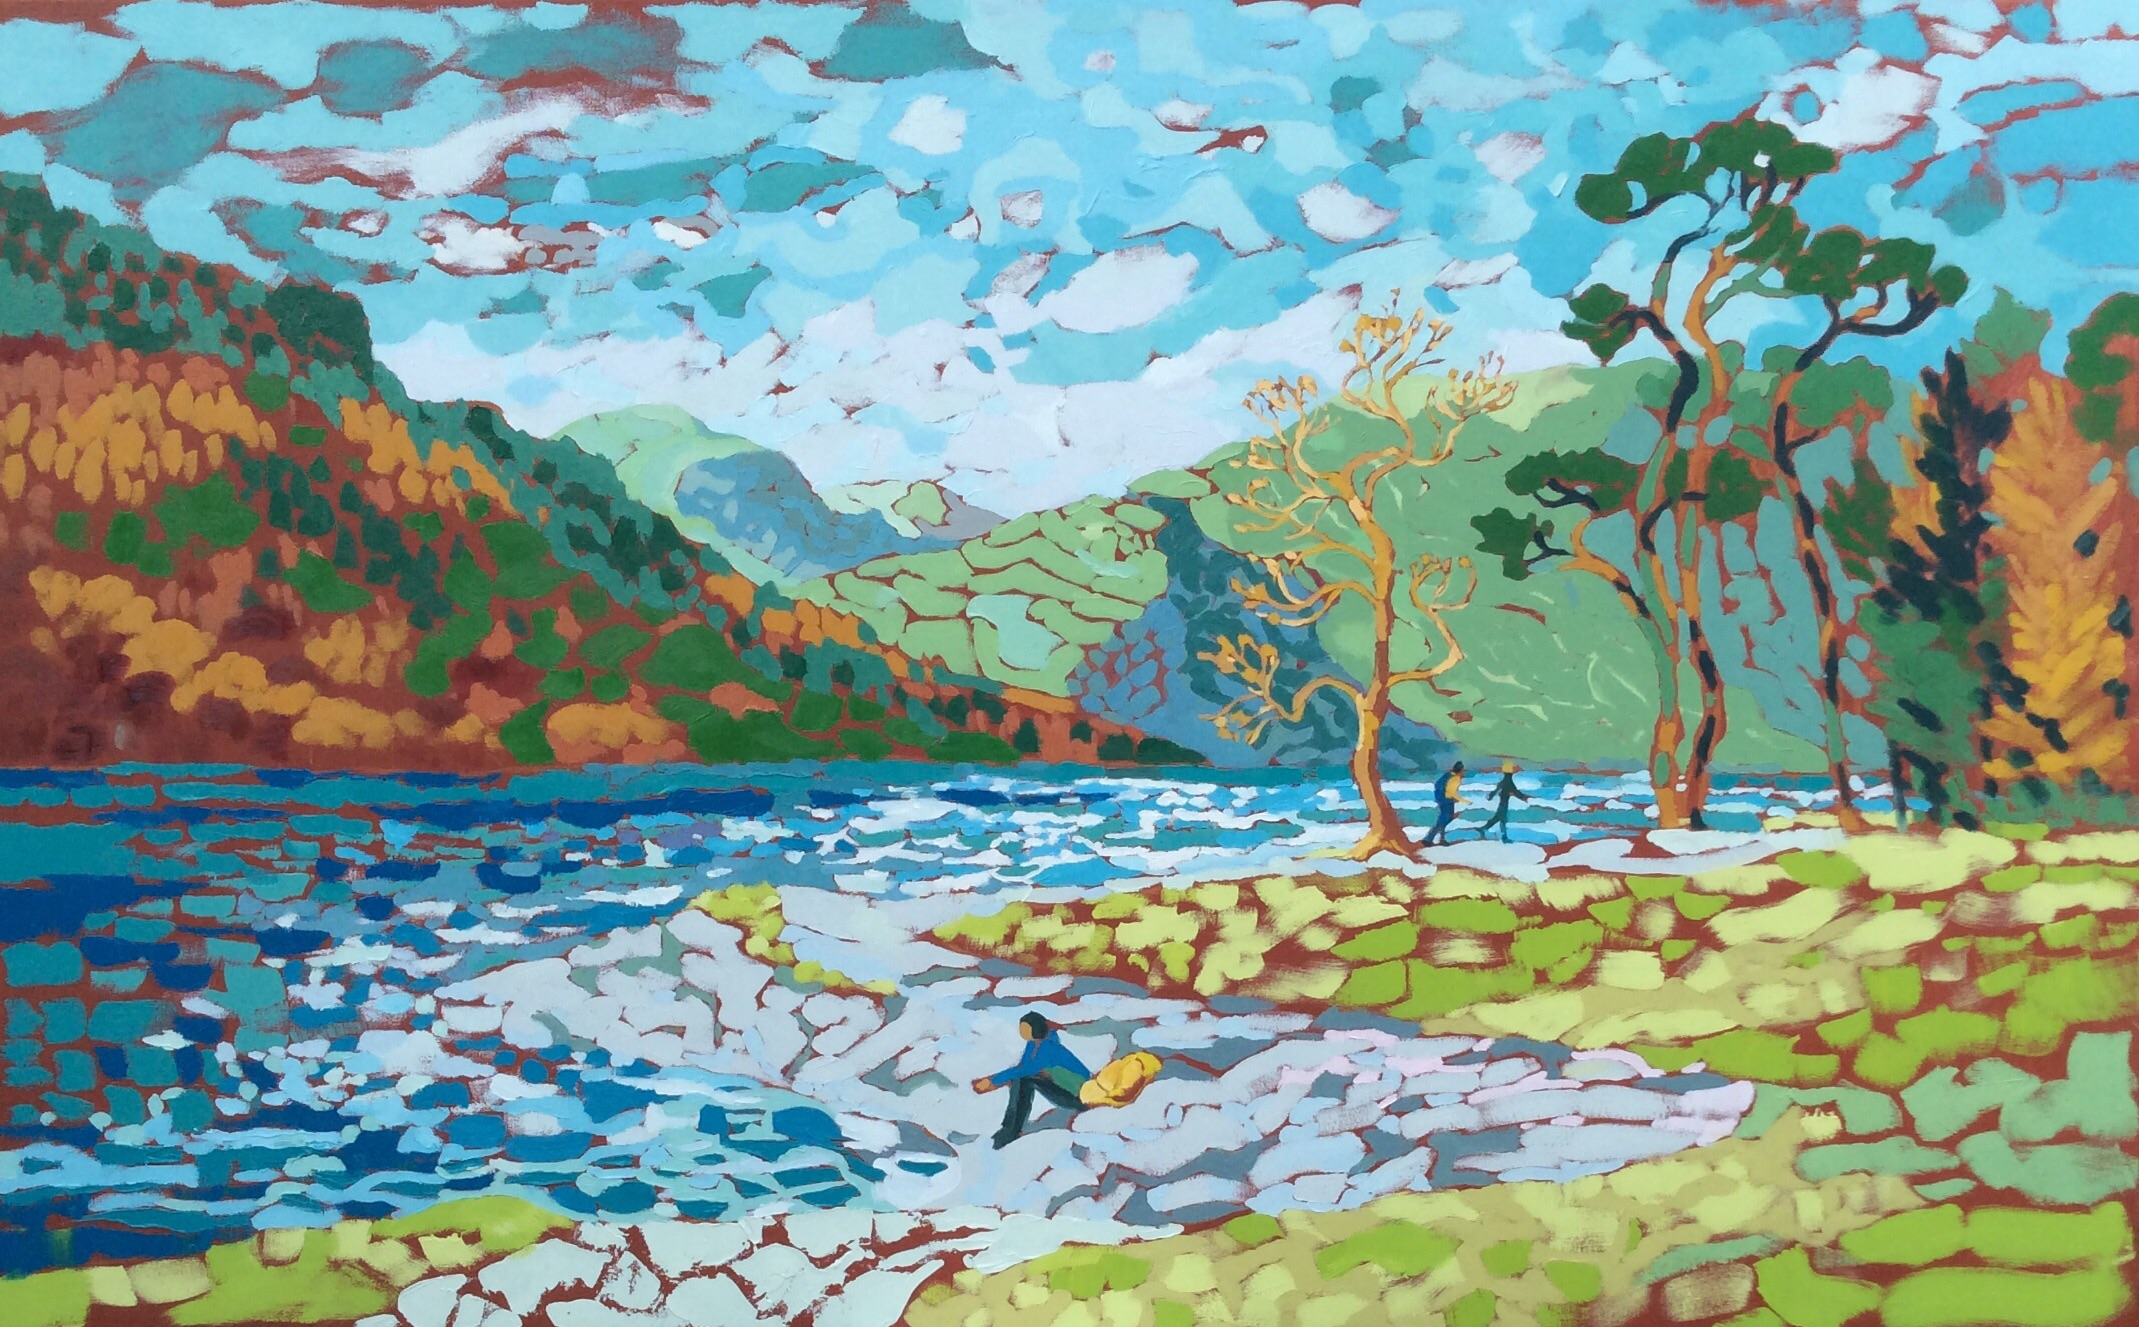 Buttermere, Windy Autumn Day. Oil on canvas. 100 x 161 cm.